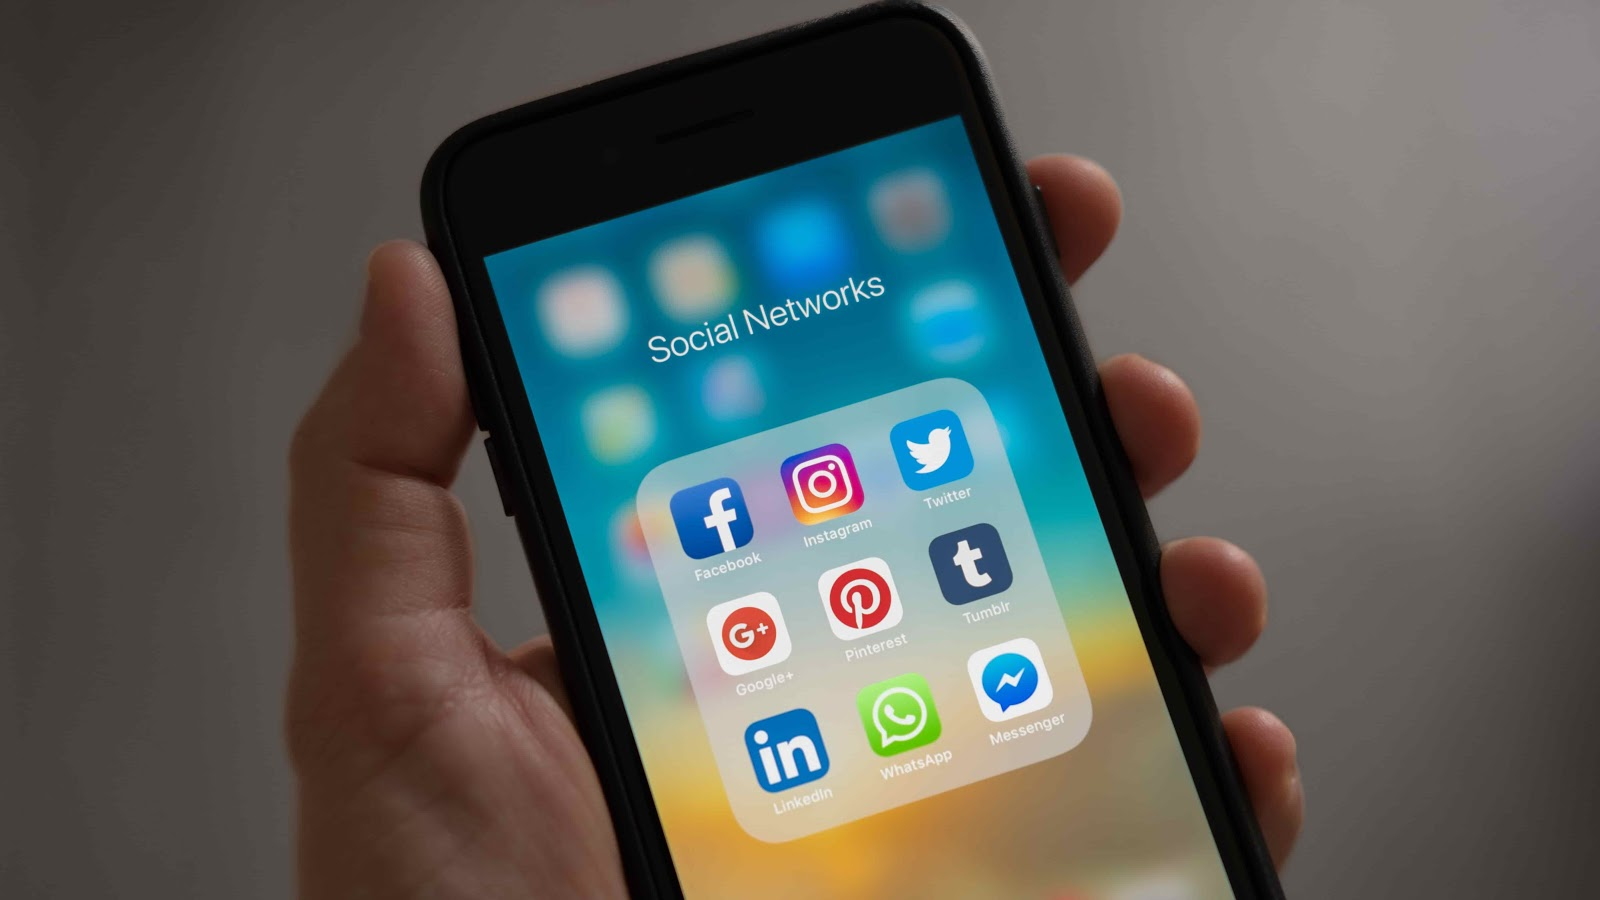 social media apps on an iPhone screen